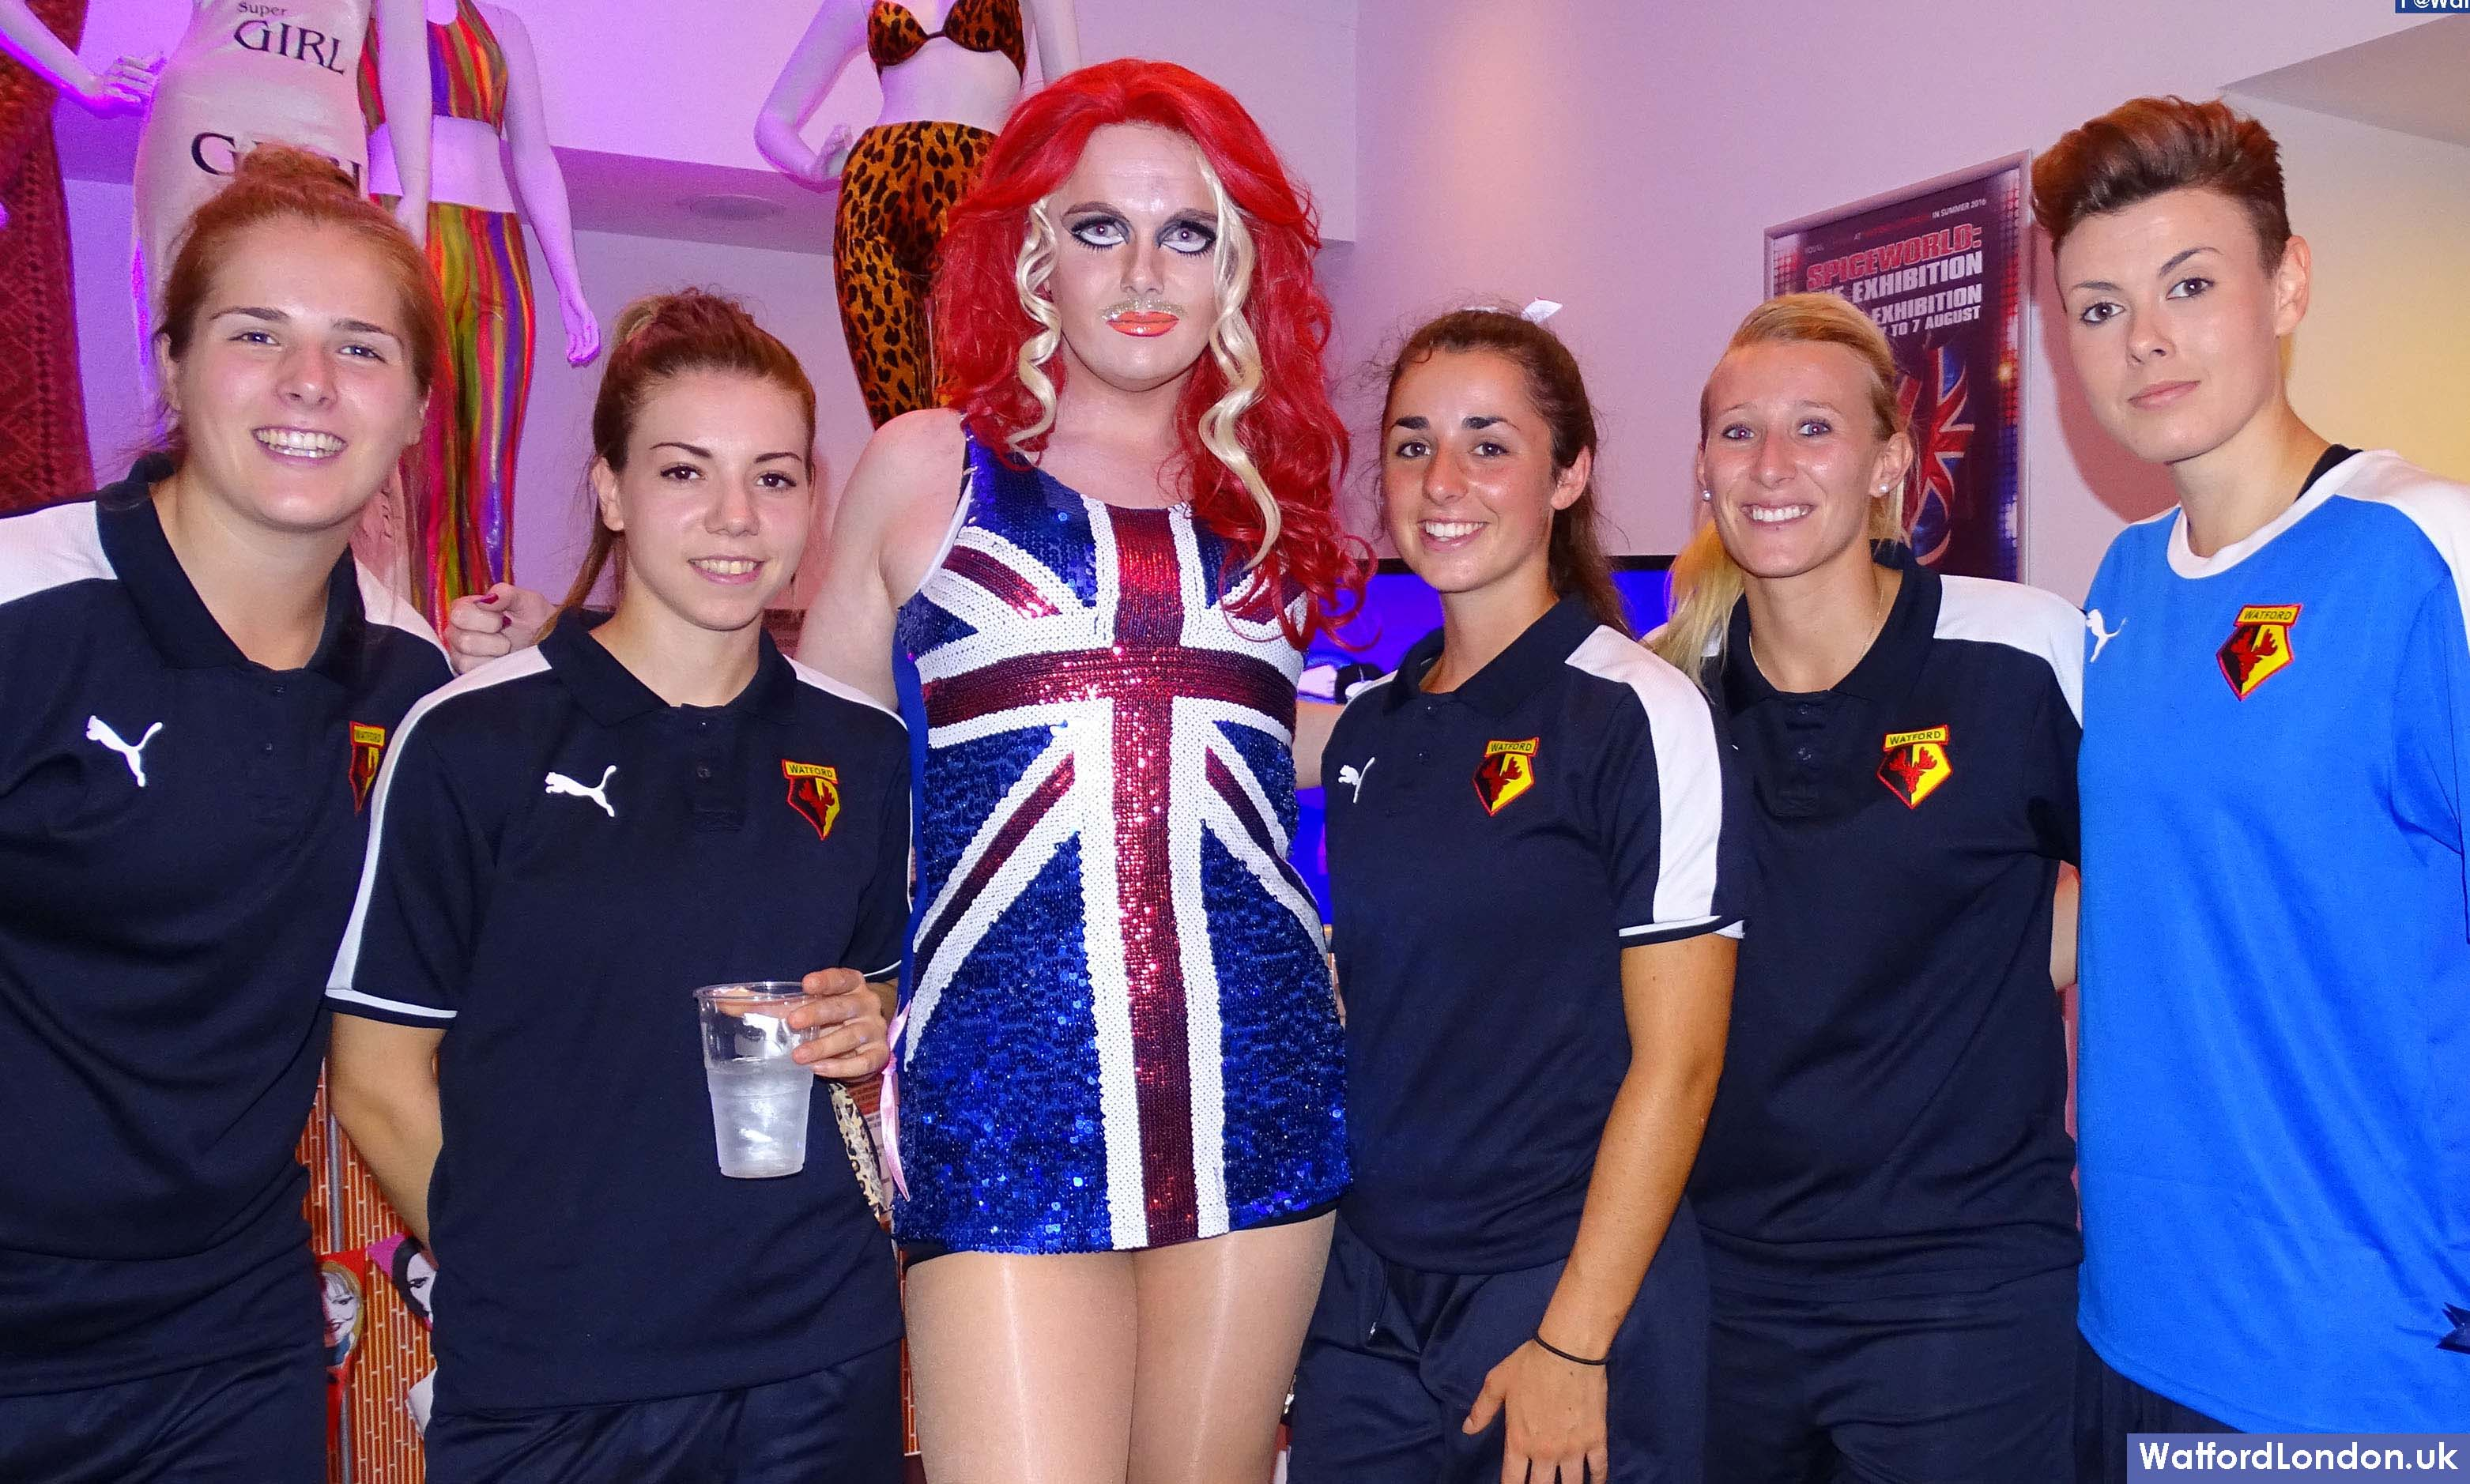 Spiceworld - The Exhibition Tour to hit Watford